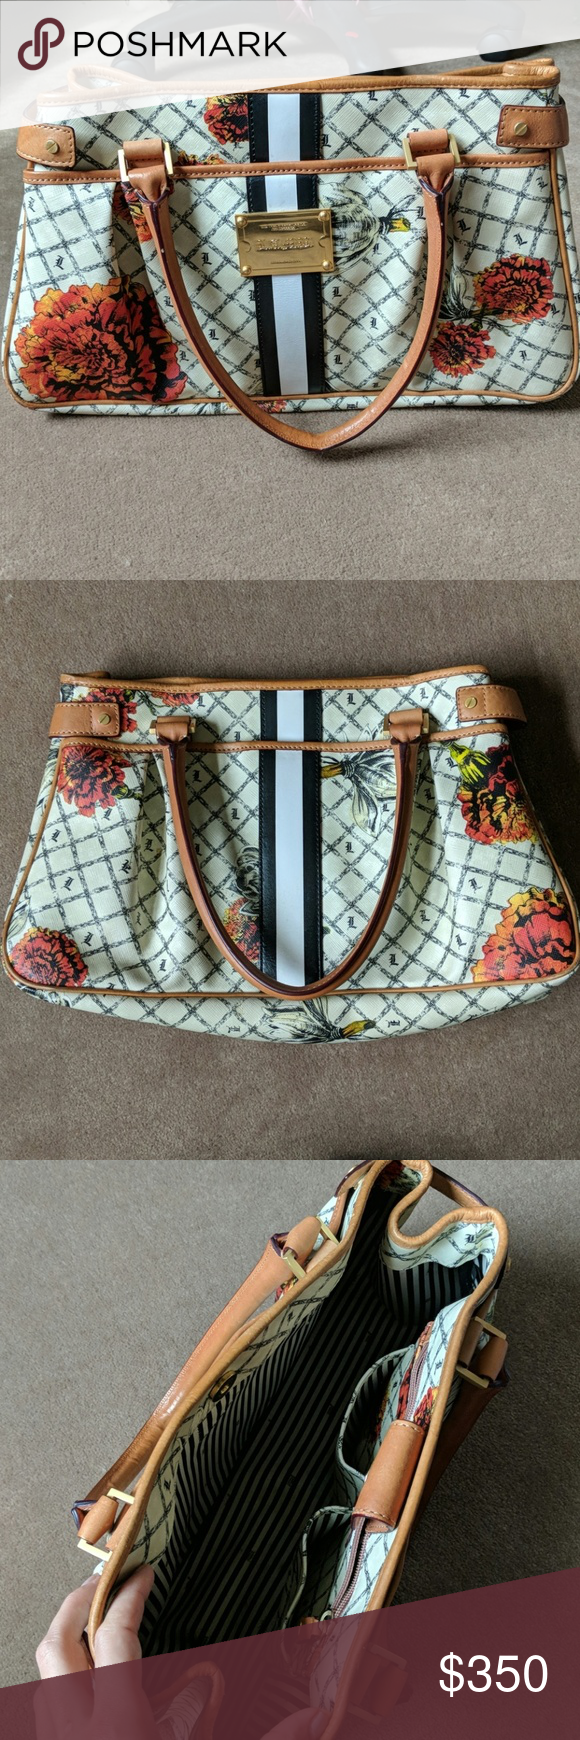 632cd7f17b16 L.A.M.B. Marigold Hopewell RARE Signature print satchel trimmed with hand  painted leather stripe and logo detailed